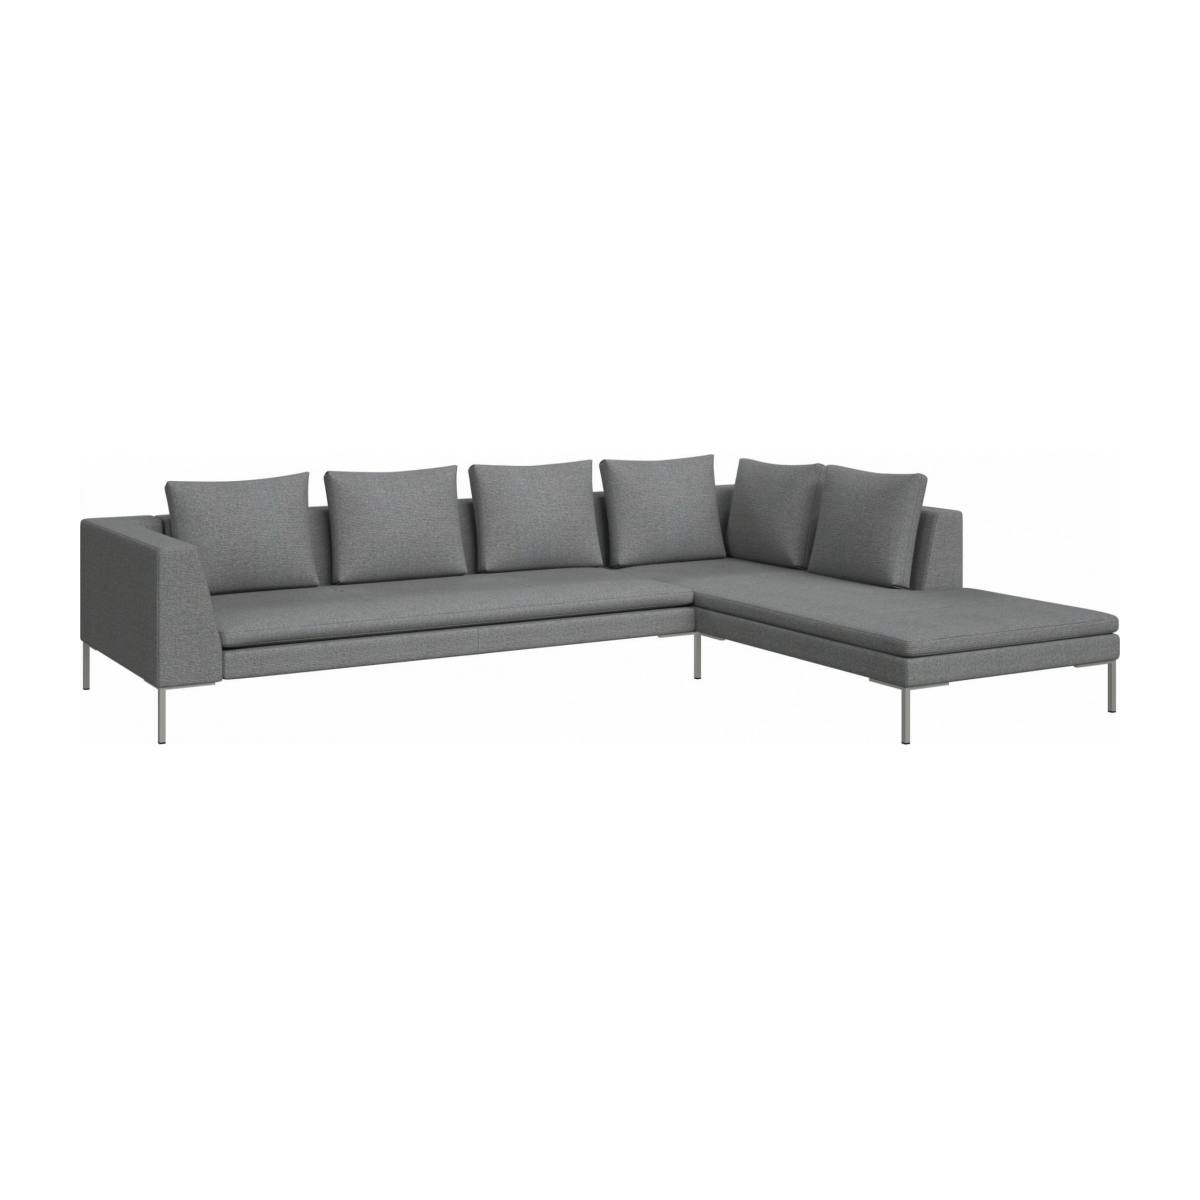 3 seater sofa with chaise longue on the right in Lecce fabric, blue reef  n°2